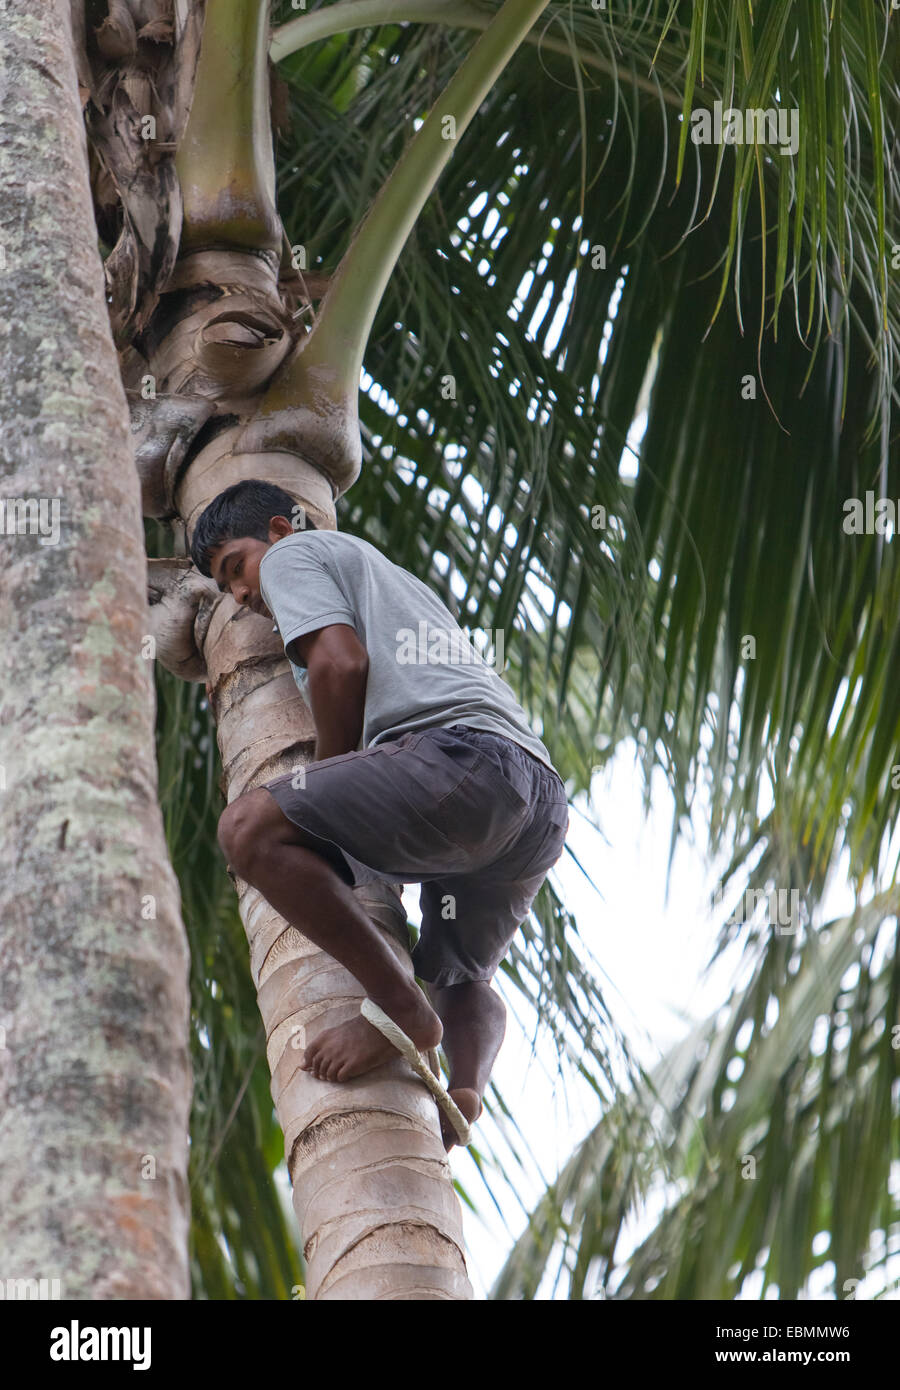 A man climbing a palm tree using traditional method of a rope loop between the ankles - Stock Image